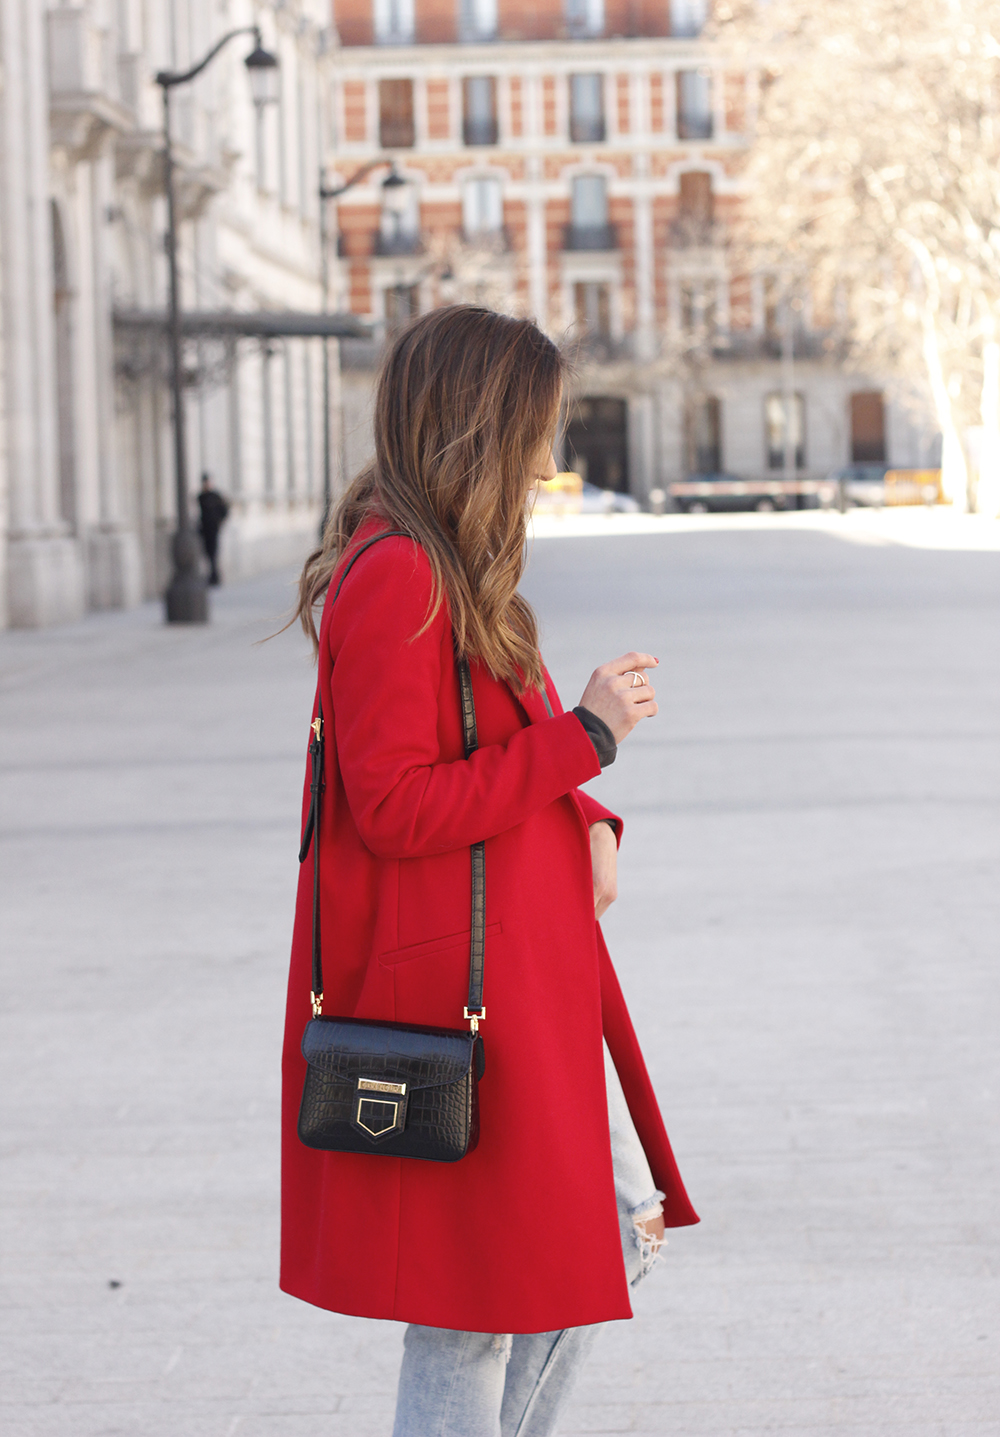 red coat givenchy bag ripped jeans leopard heels winter outfit look de invierno12